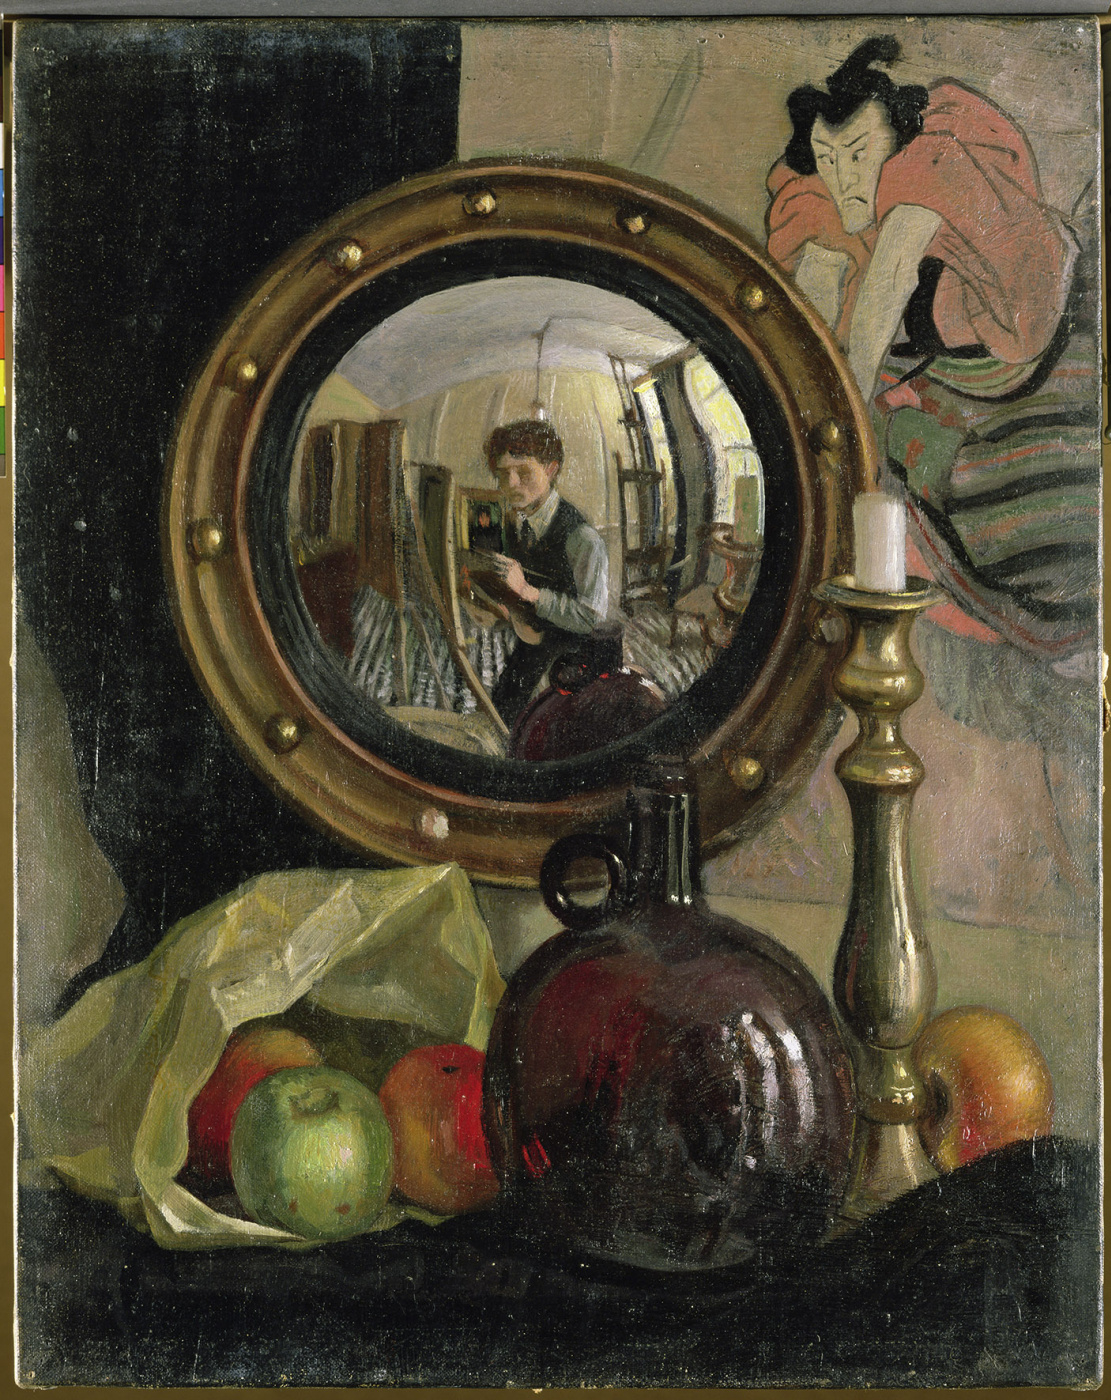 Still Life with Self-Portrait by Mark Gertler: History, Analysis & Facts